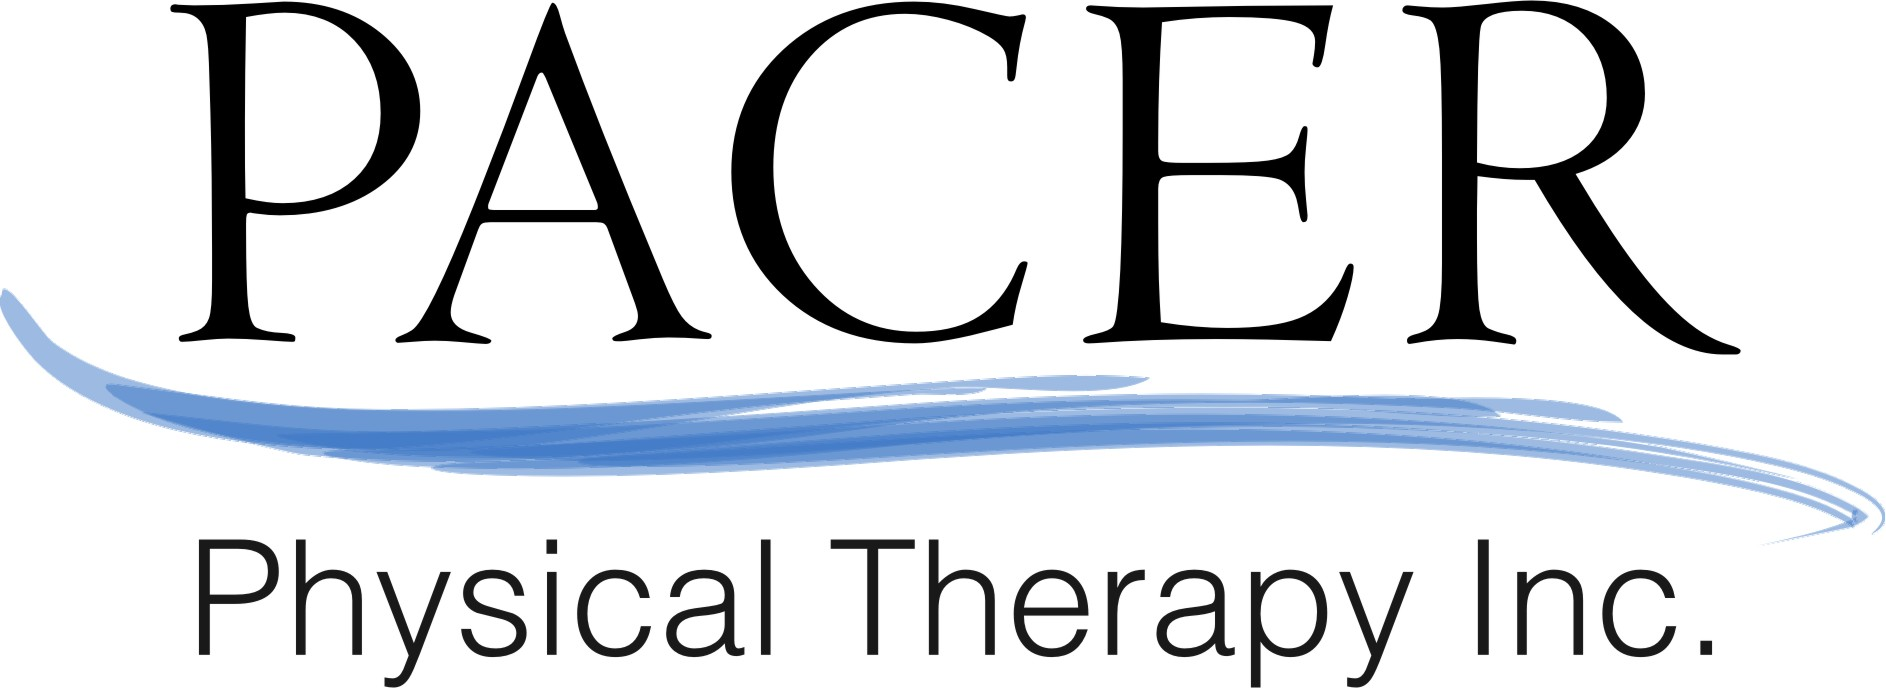 Pacer Physical Therapy Inc., San Ramon, CA - Localwise business profile picture